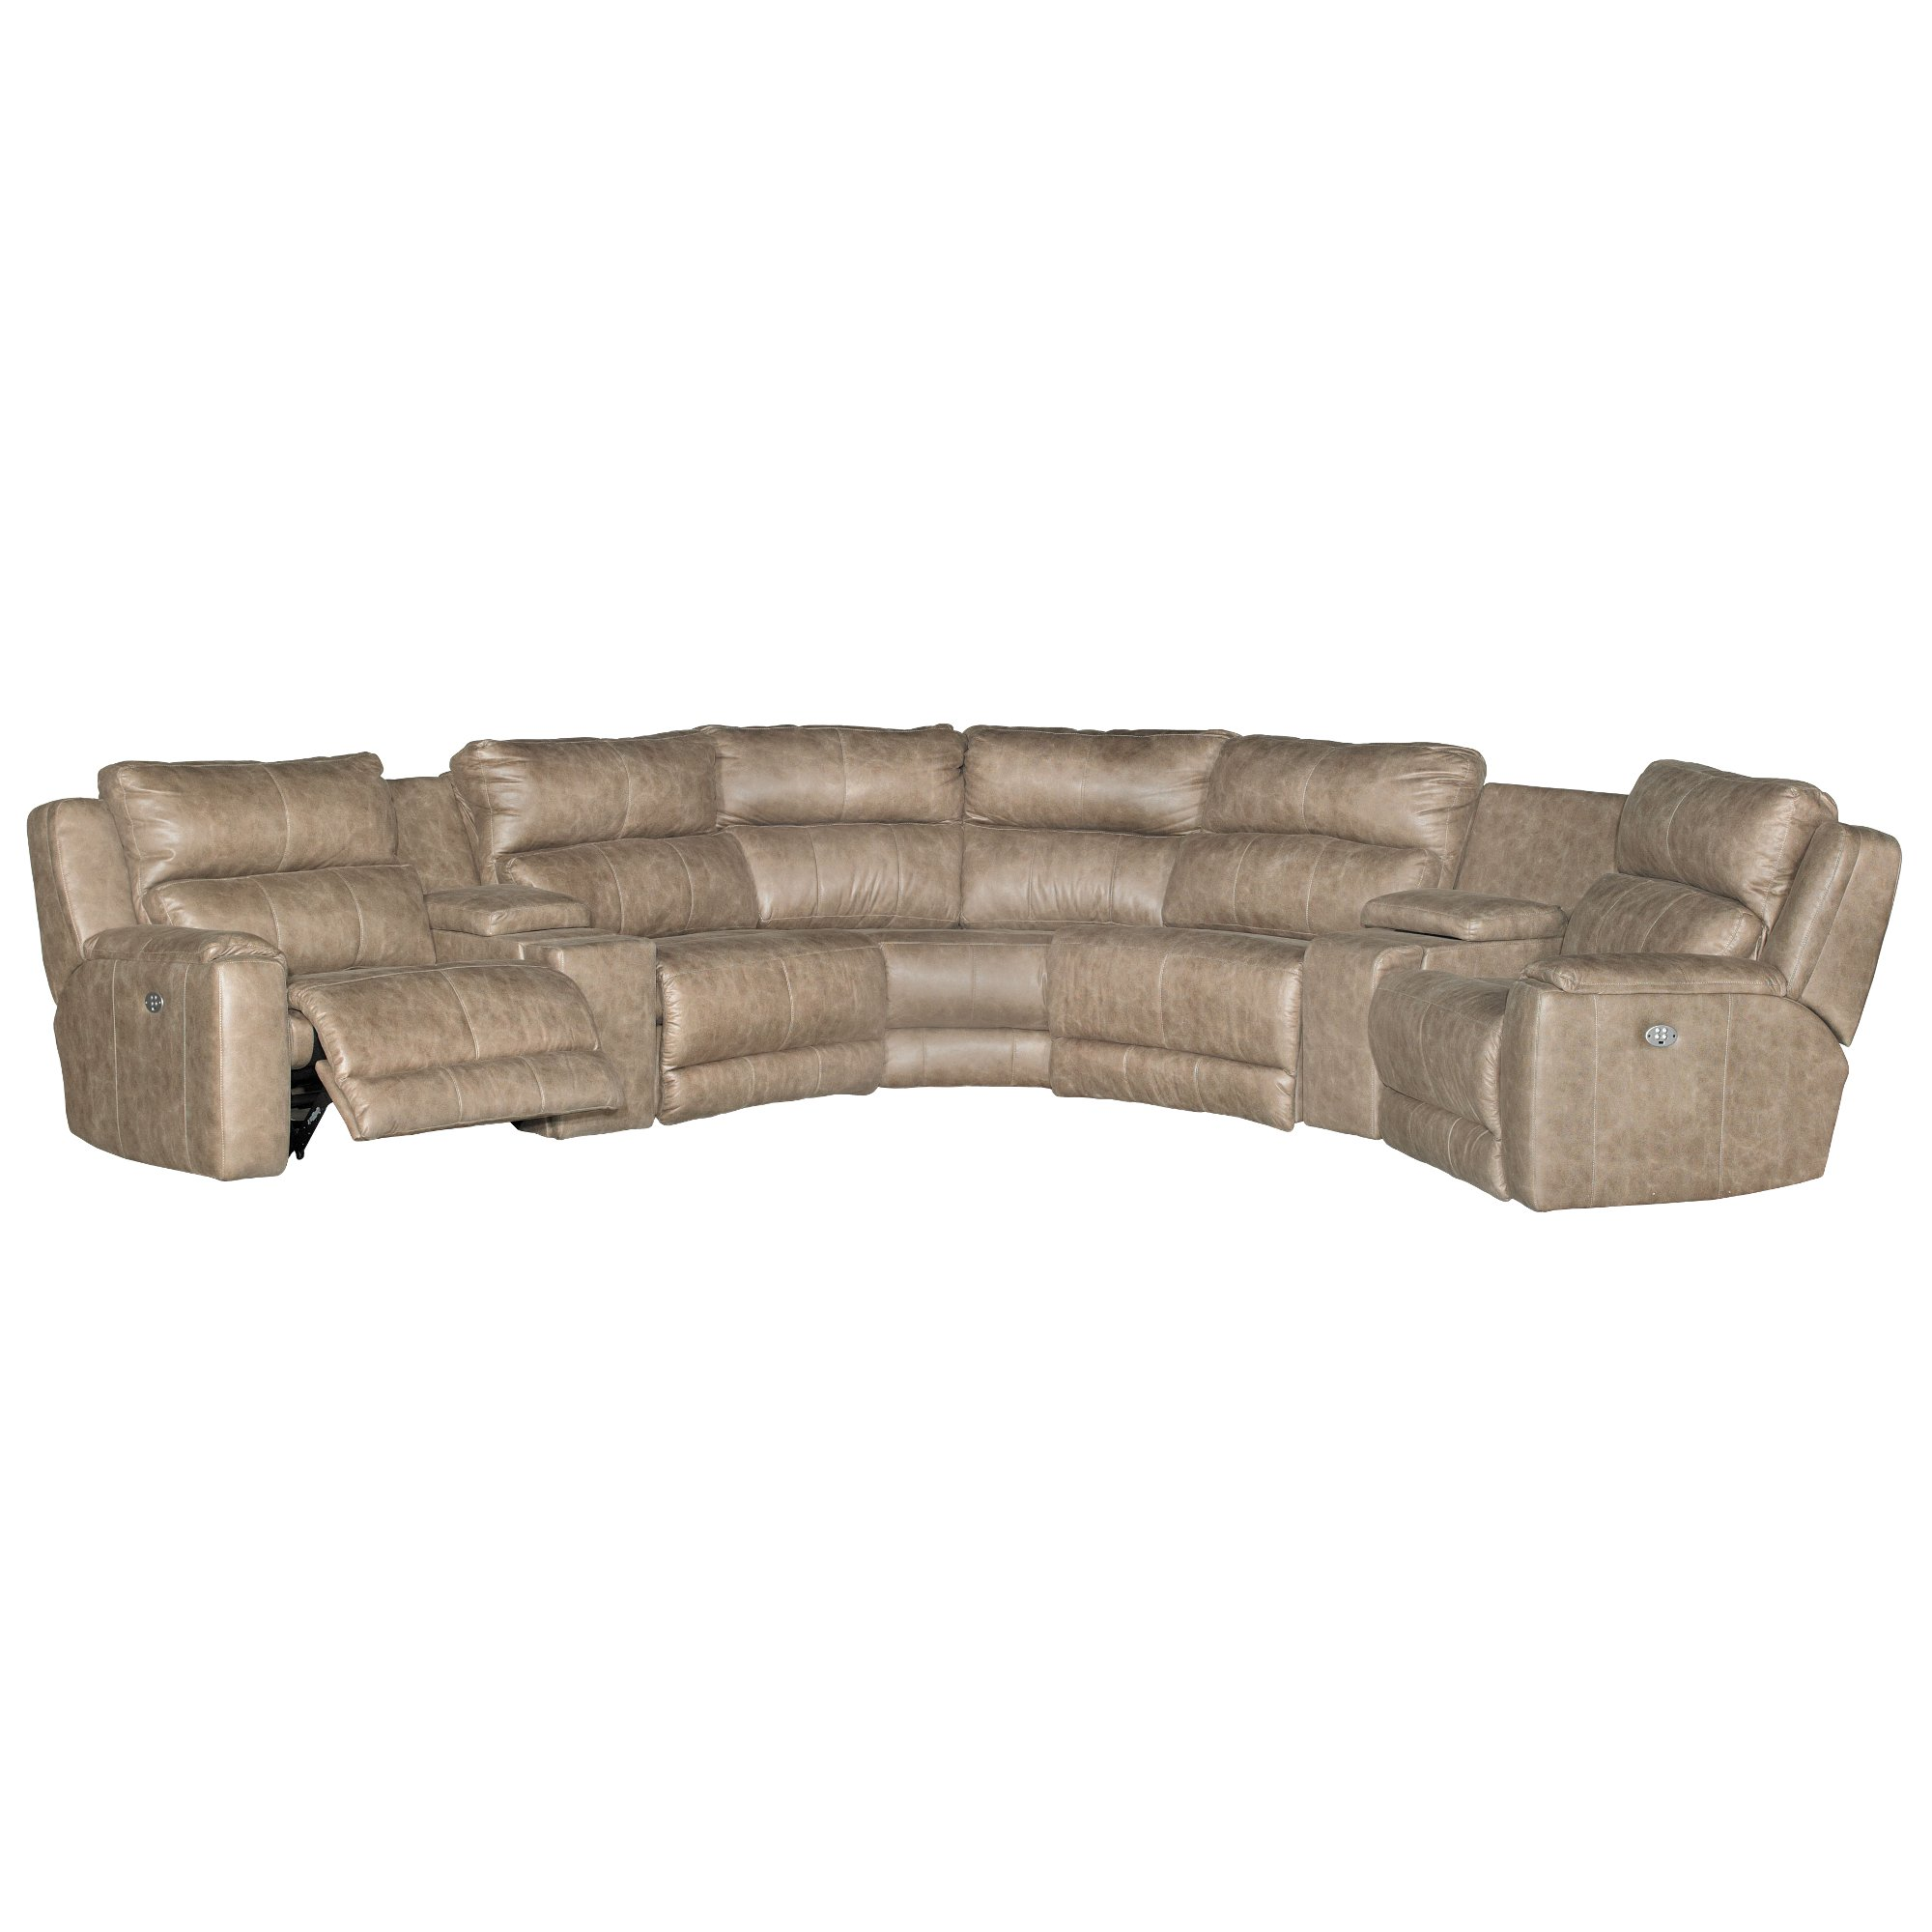 Awesome Vintage Taupe 7 Piece Power Reclining Sectional Sofa Dazzle Evergreenethics Interior Chair Design Evergreenethicsorg